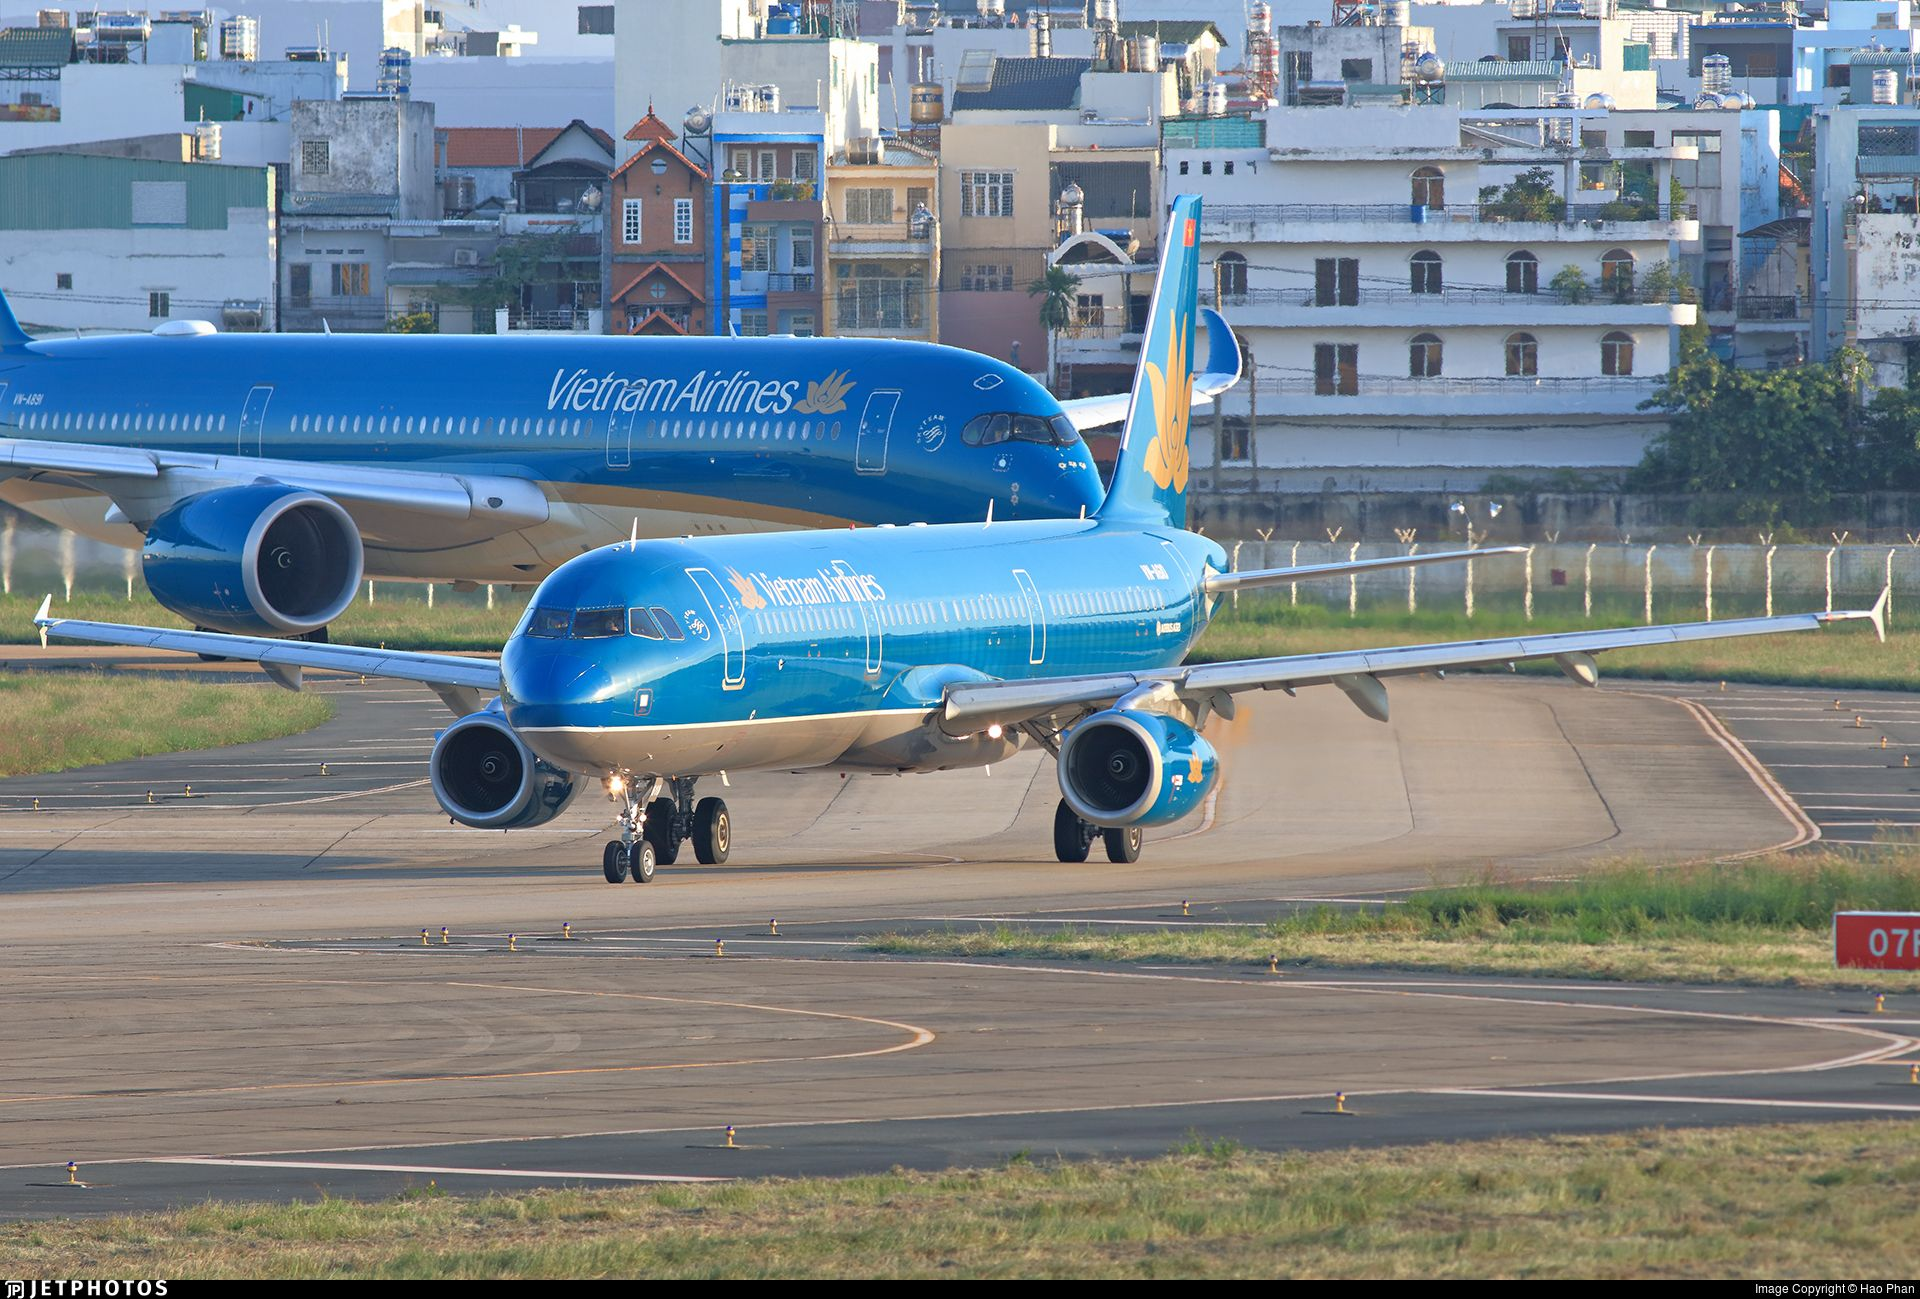 Photo Of Vn A610 Airbus A321 231 Vietnam Airlines Vietnam Airlines Airbus Vietnam